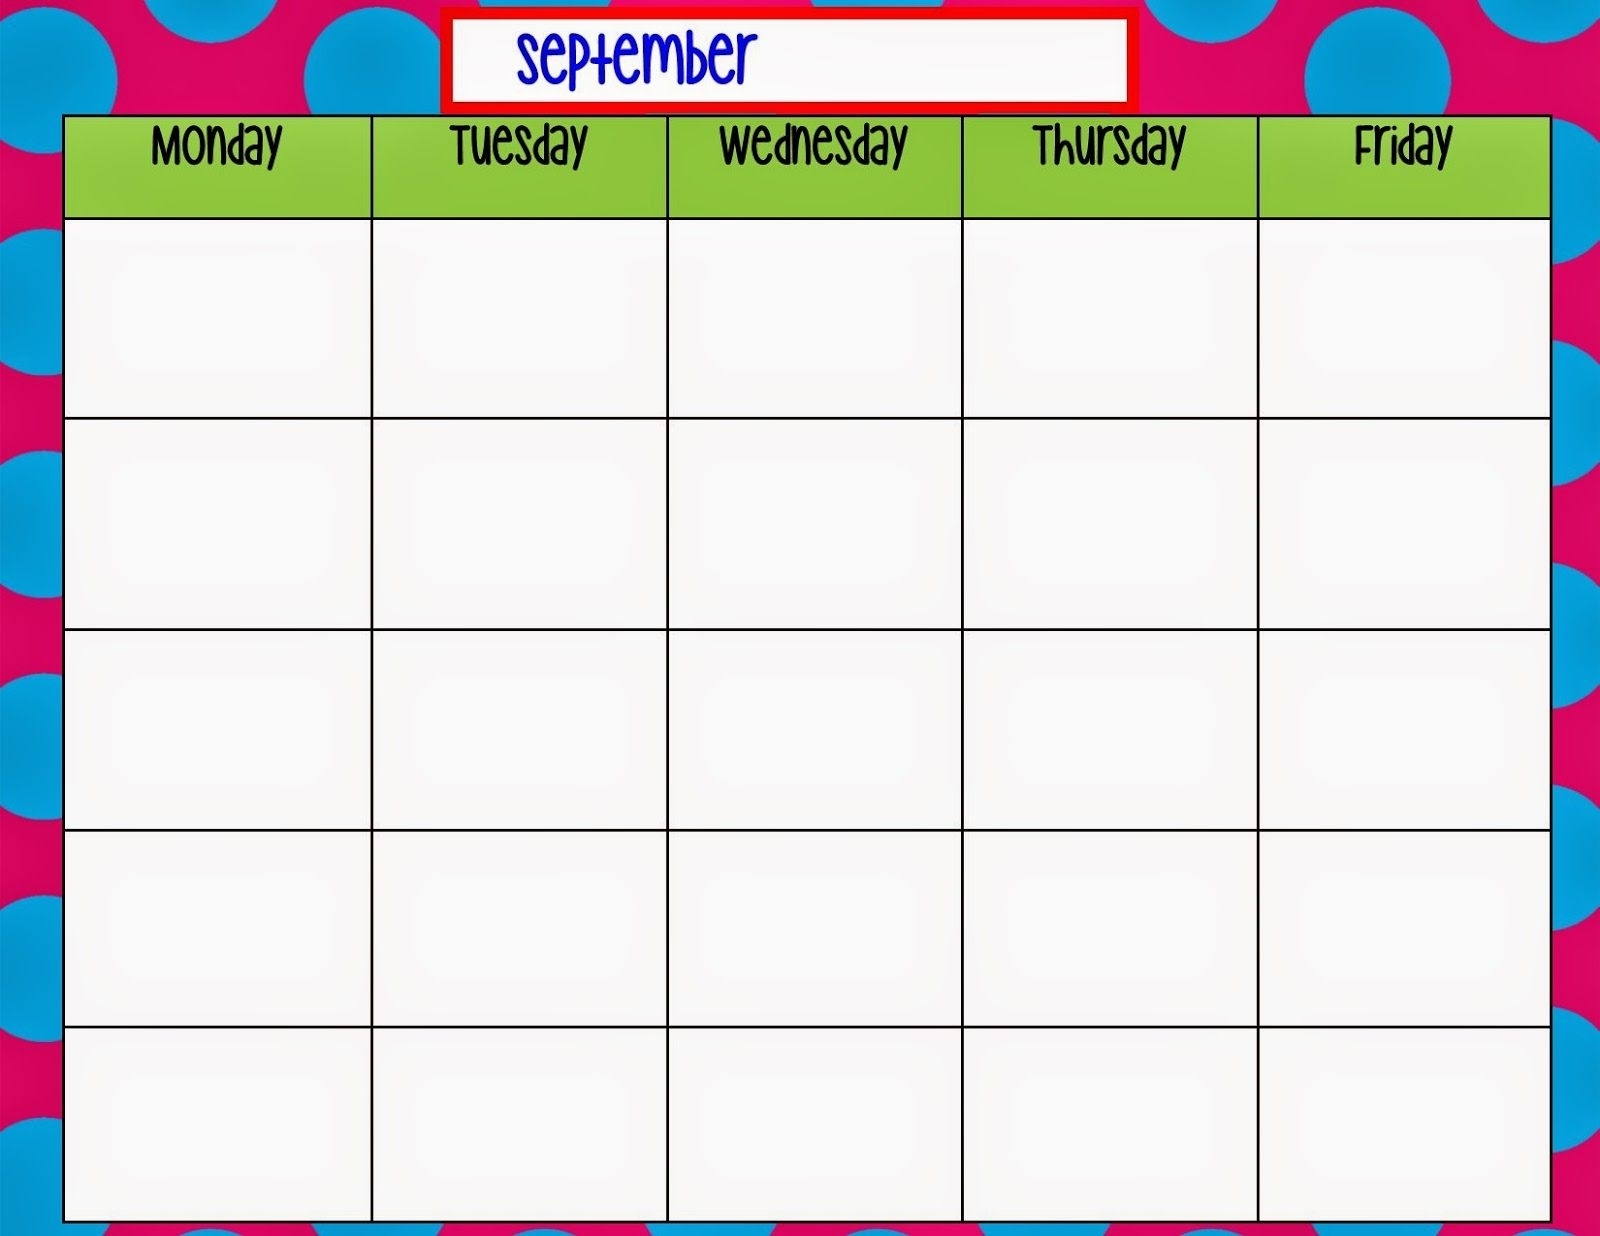 Monday Through Friday Calendar Template | Preschool | Printable intended for Monday To Friday Schedule Printable